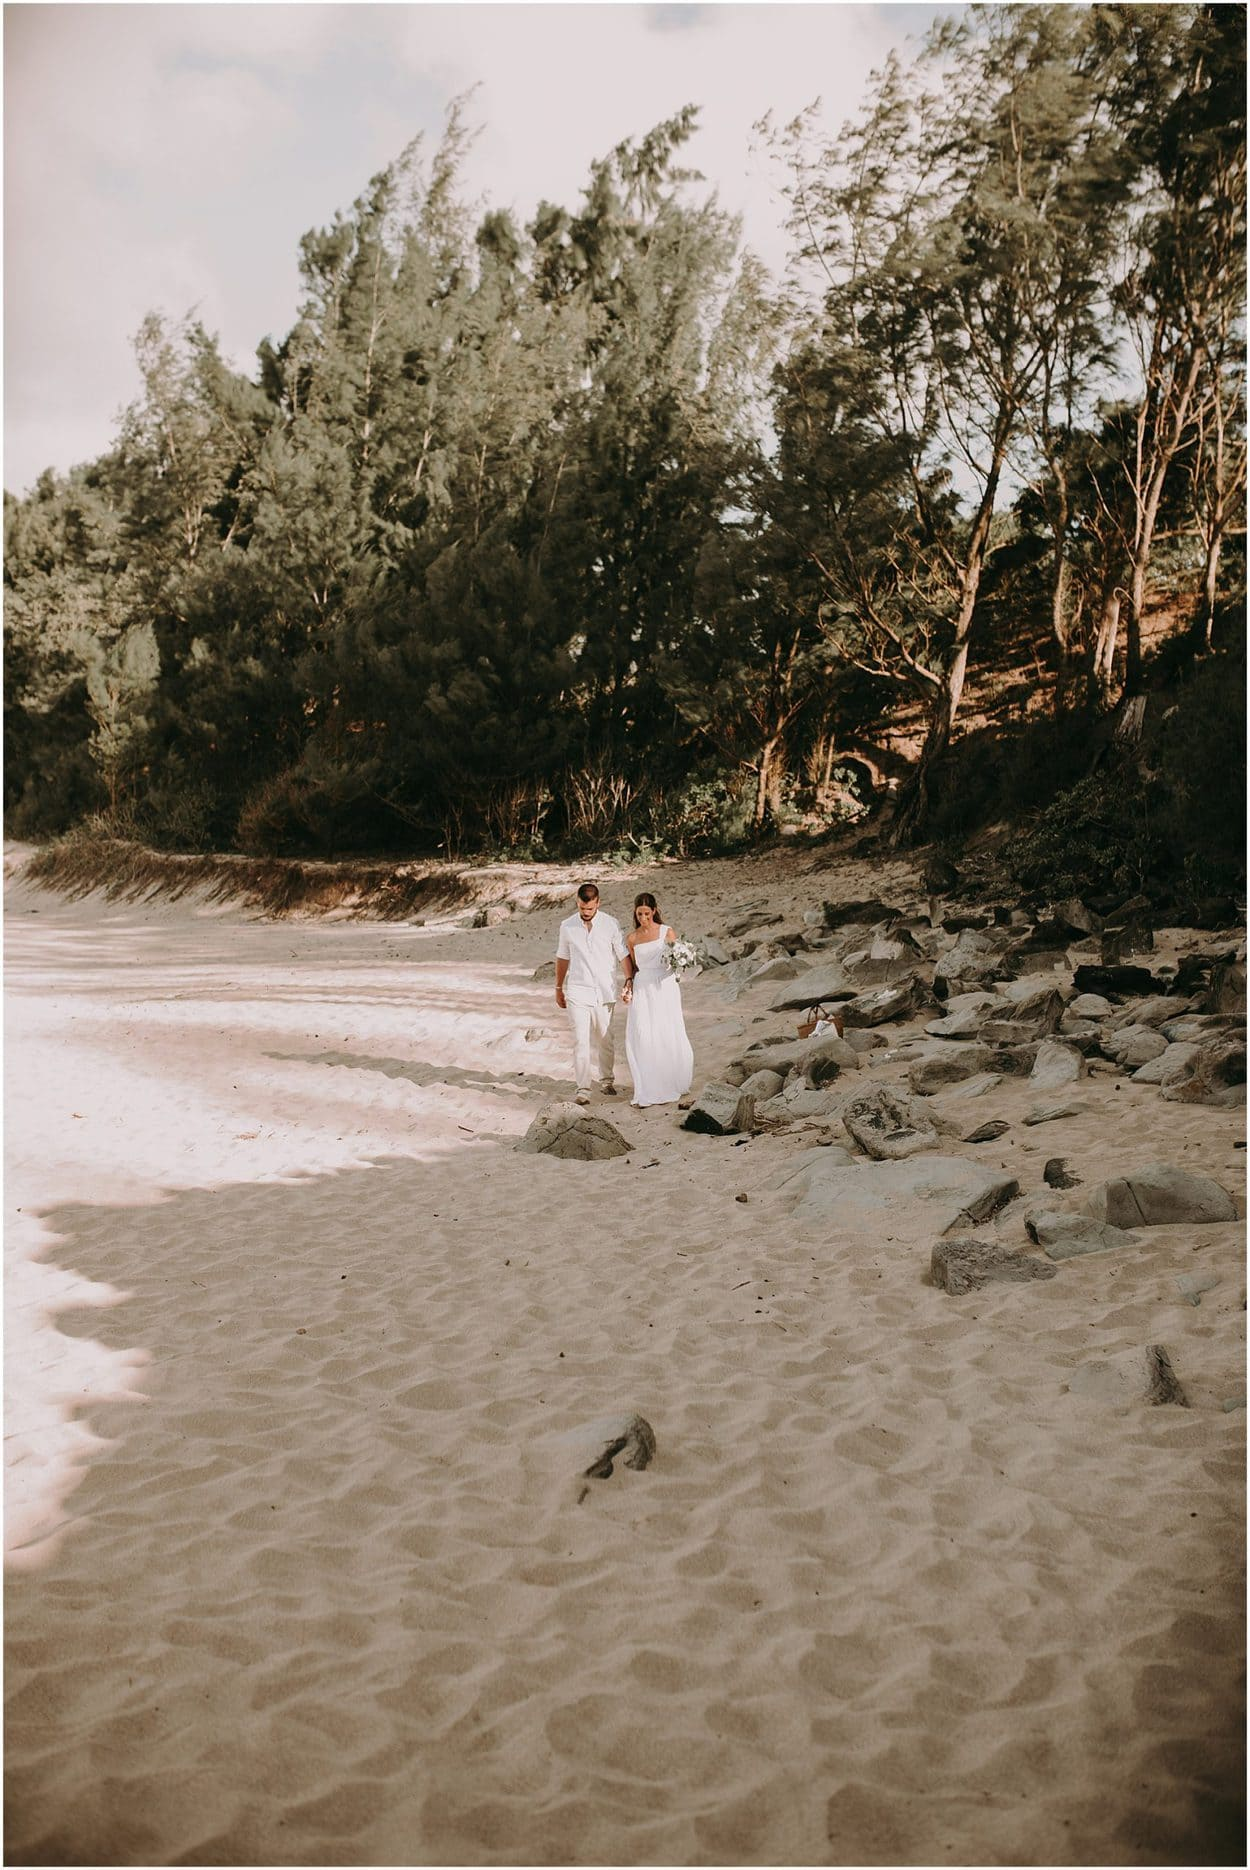 Maui wedding photographer10